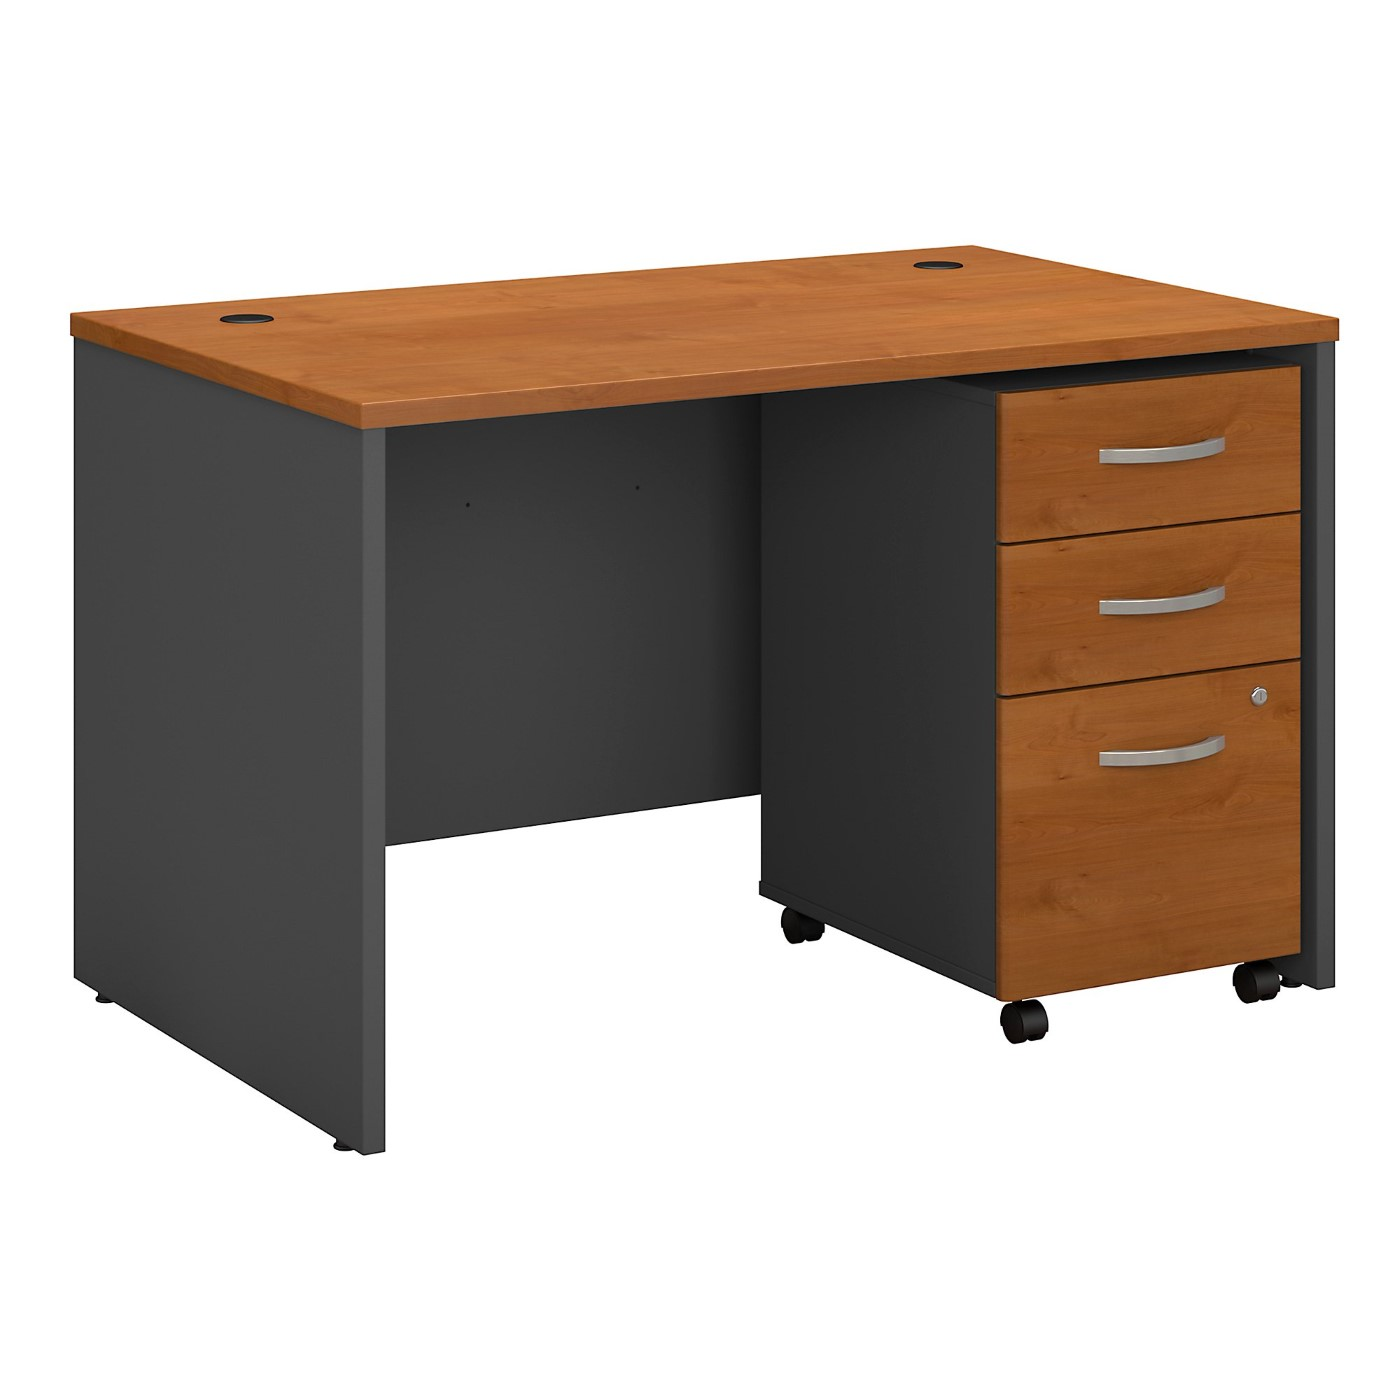 BUSH BUSINESS FURNITURE SERIES C 48W X 30D OFFICE DESK WITH MOBILE FILE CABINET. FREE SHIPPING